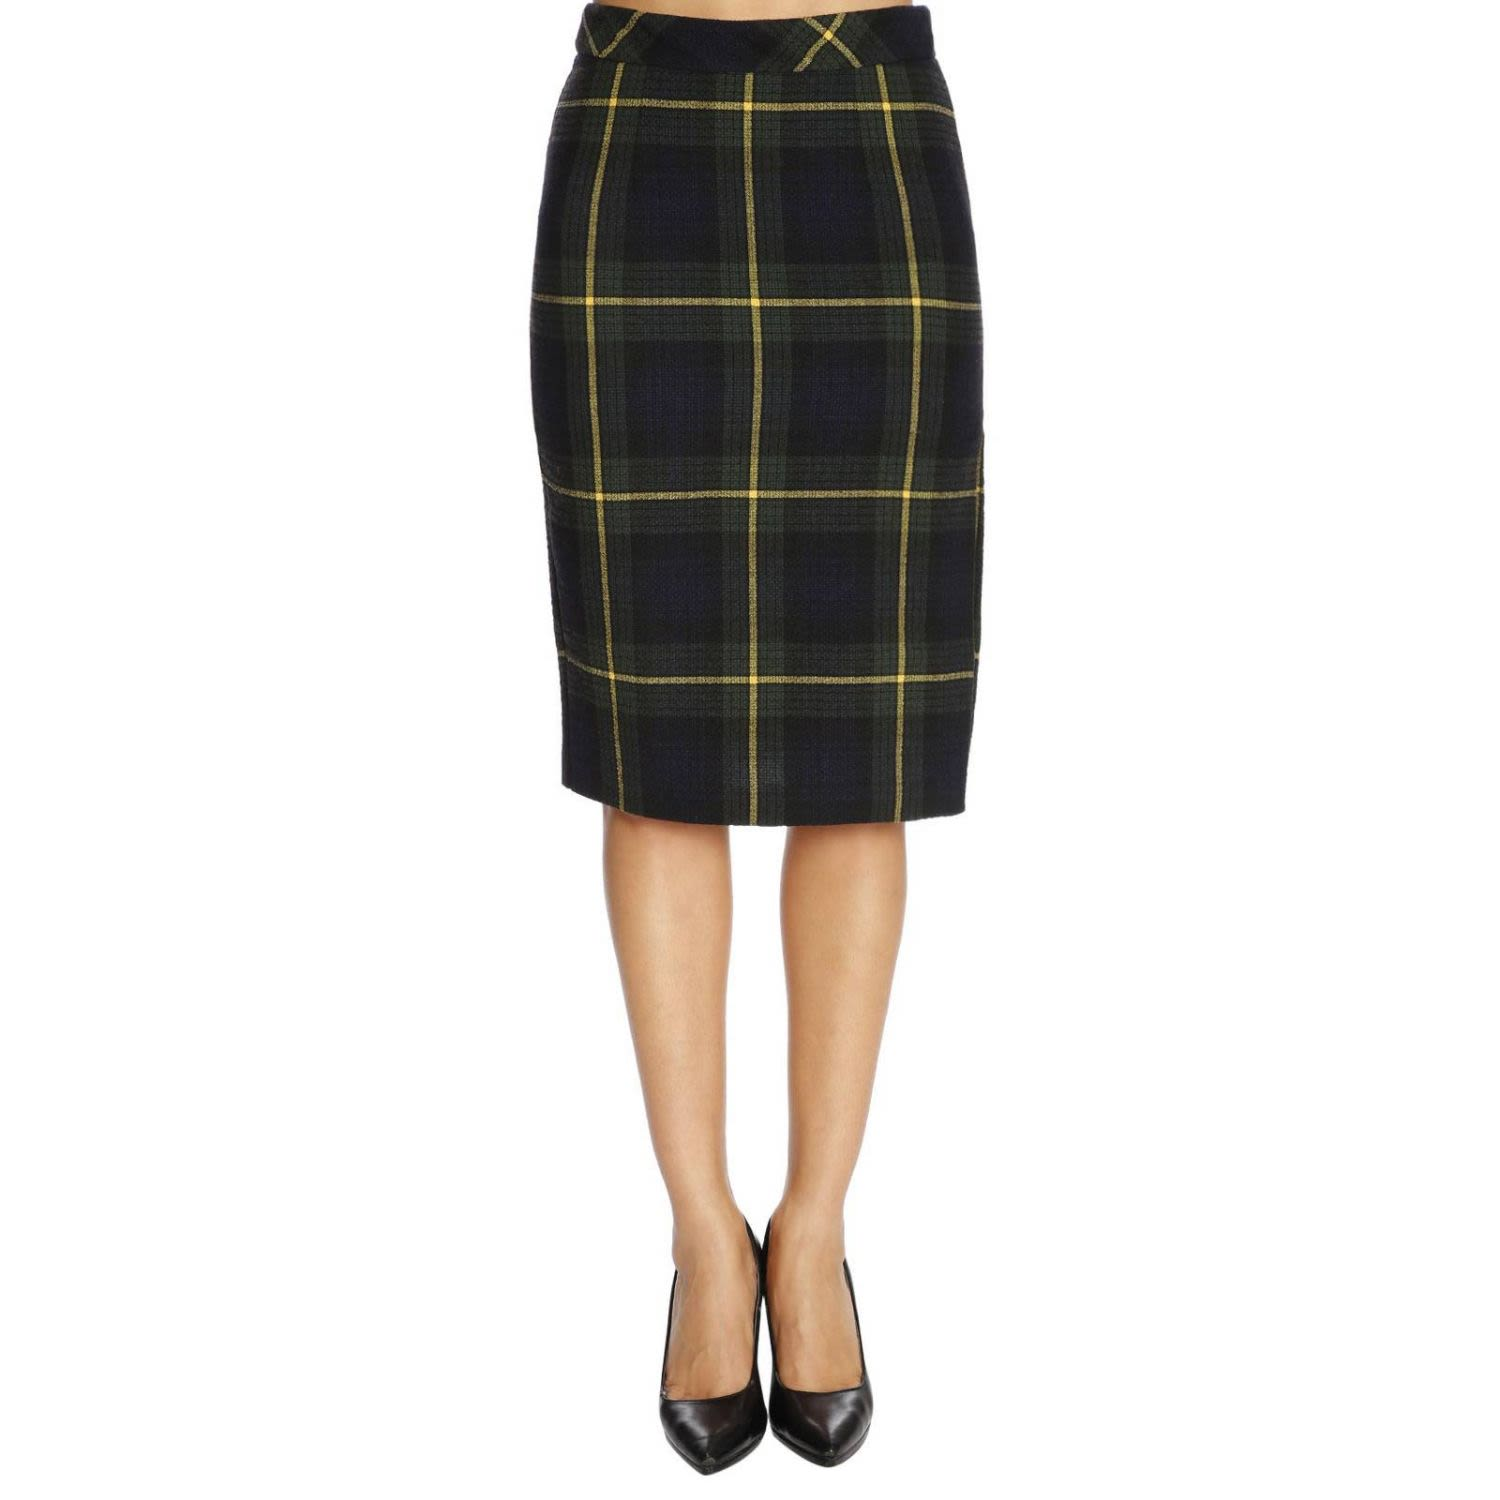 boutique moschino -  Skirt Skirt Women